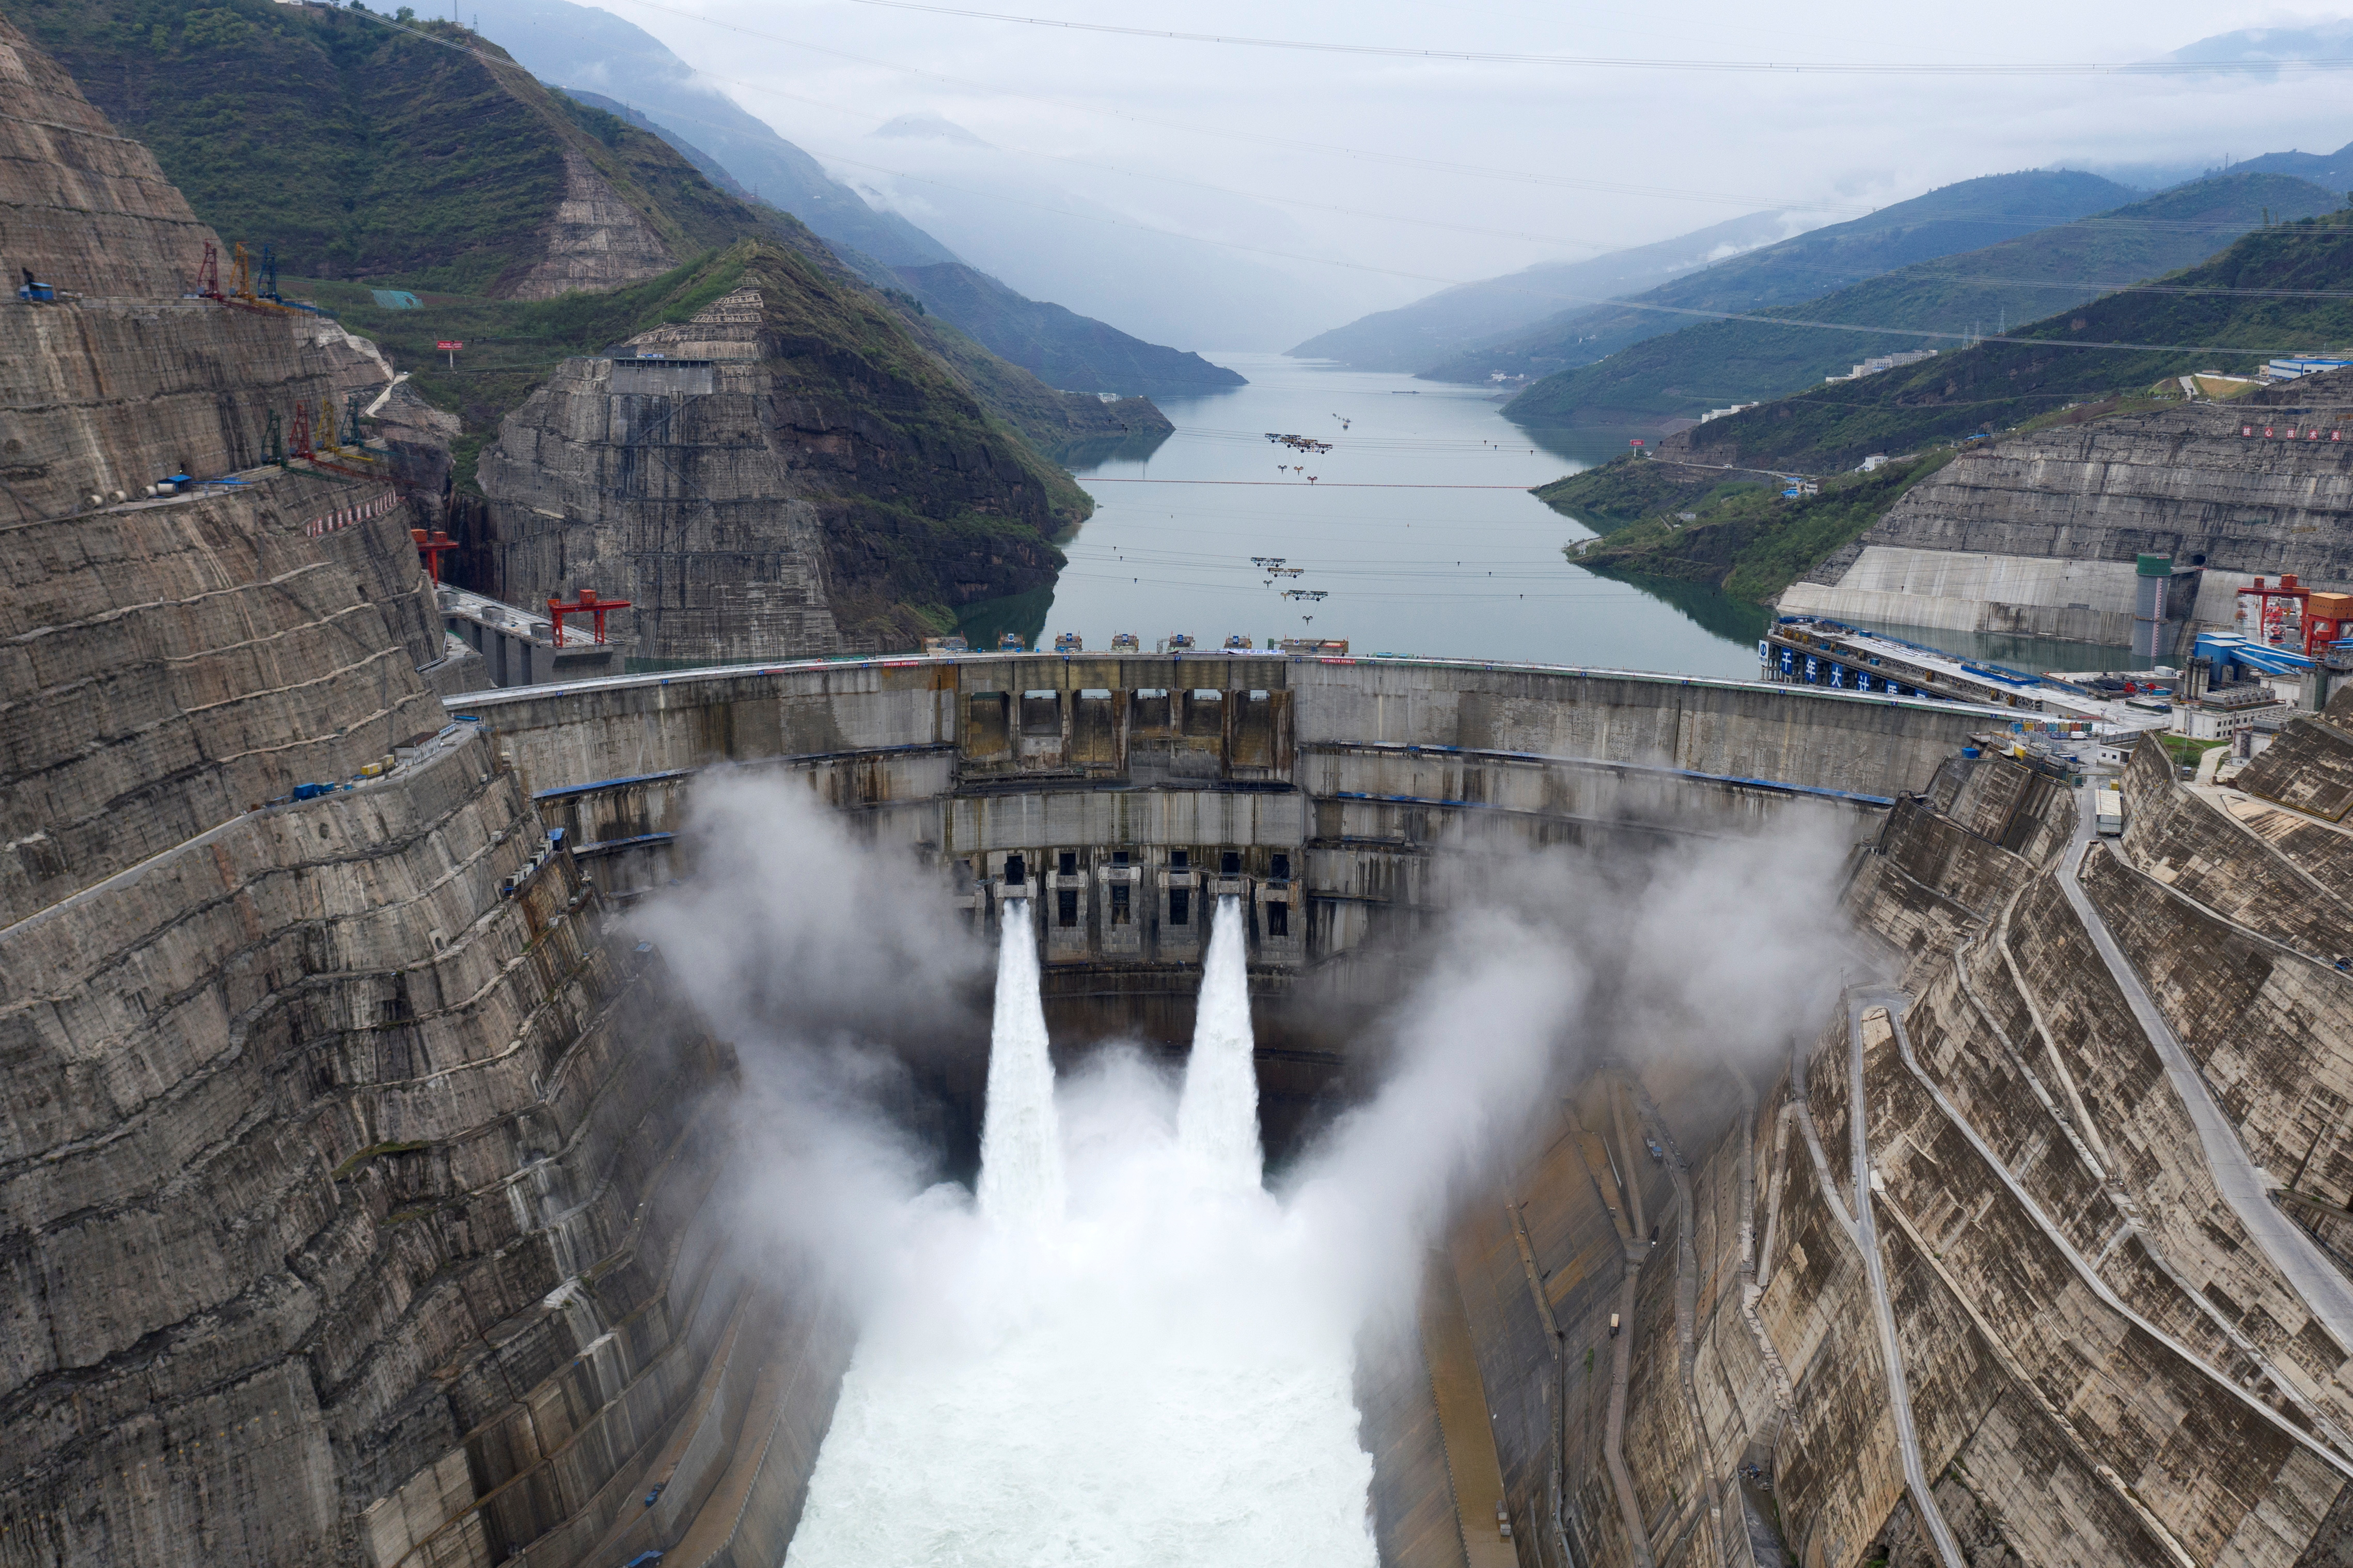 The Baihetan hydropower plant is seen in operation on the border between Qiaojia county of Yunnan province and Ningnan county of Sichuan province, China June 28, 2021. Picture taken with a drone. cnsphoto via REUTERS